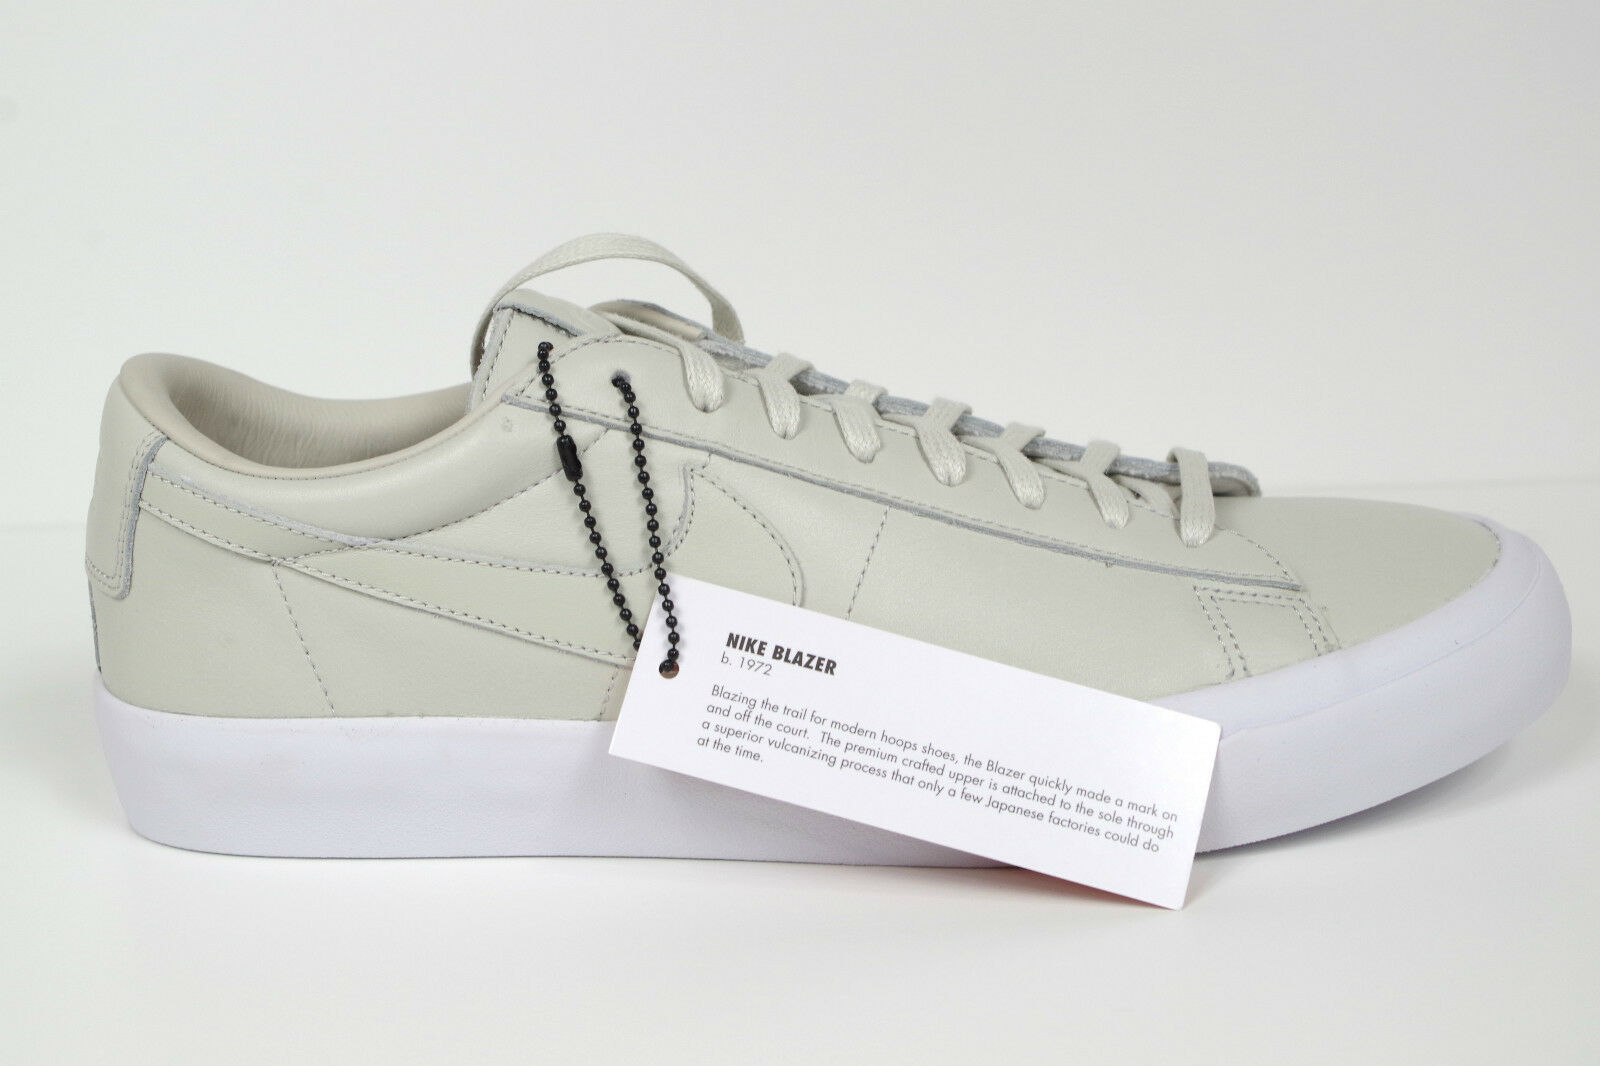 NIKE BLAZER STUDIO QS LIGHT BONE size US 6.5 BNIB 850478-001